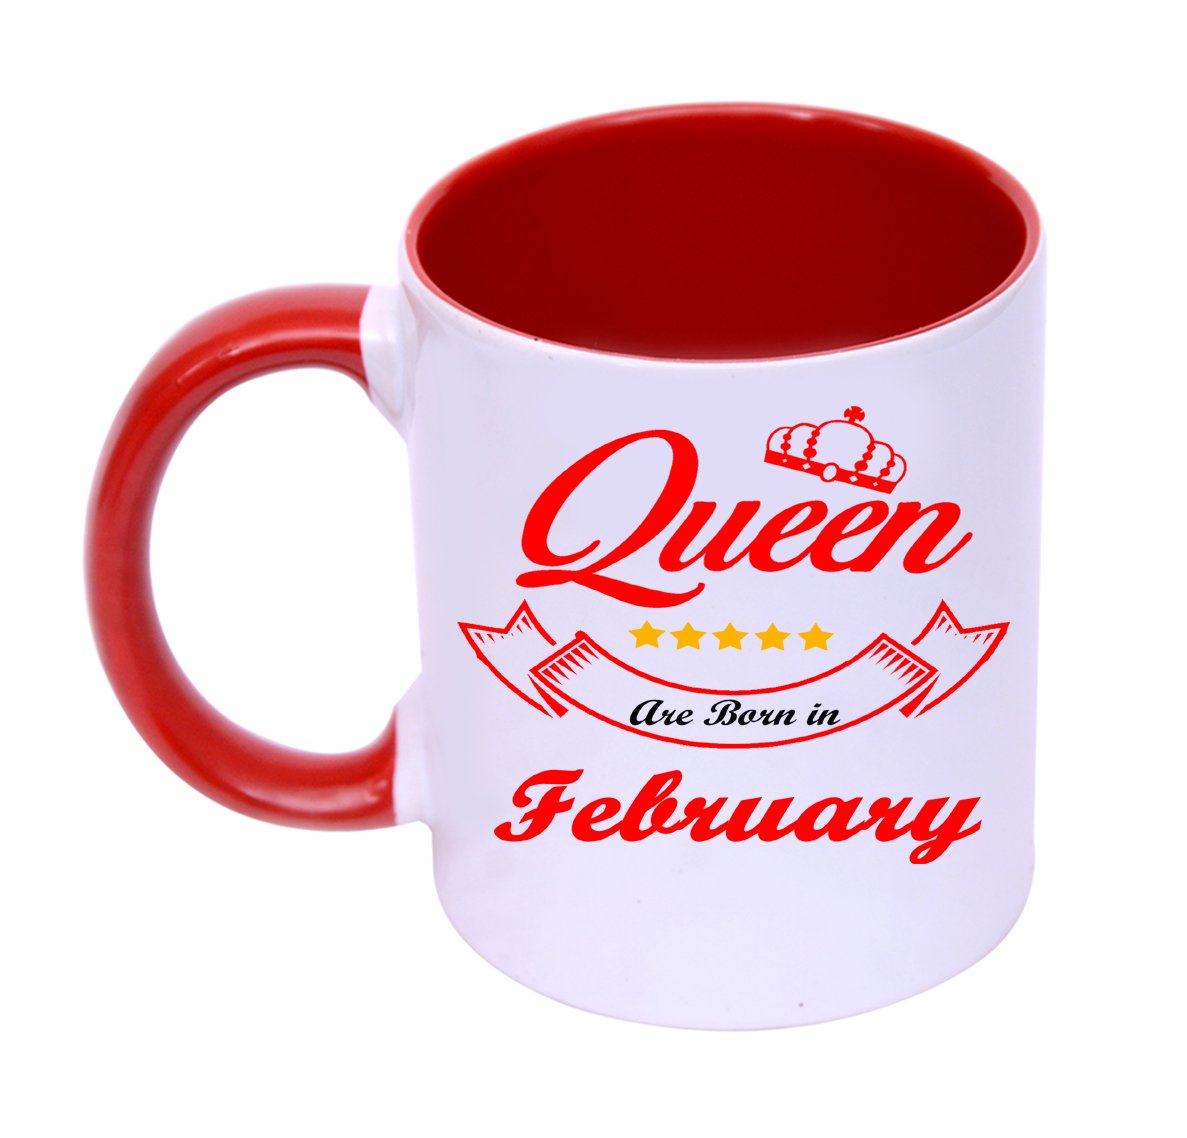 8e75295792f Buy RjKart Ceramic Queen's are Born in February Coffee Milk Mug for  Birthday Gift, 325 Ml | Red and White Online at Low Prices in India -  Amazon.in